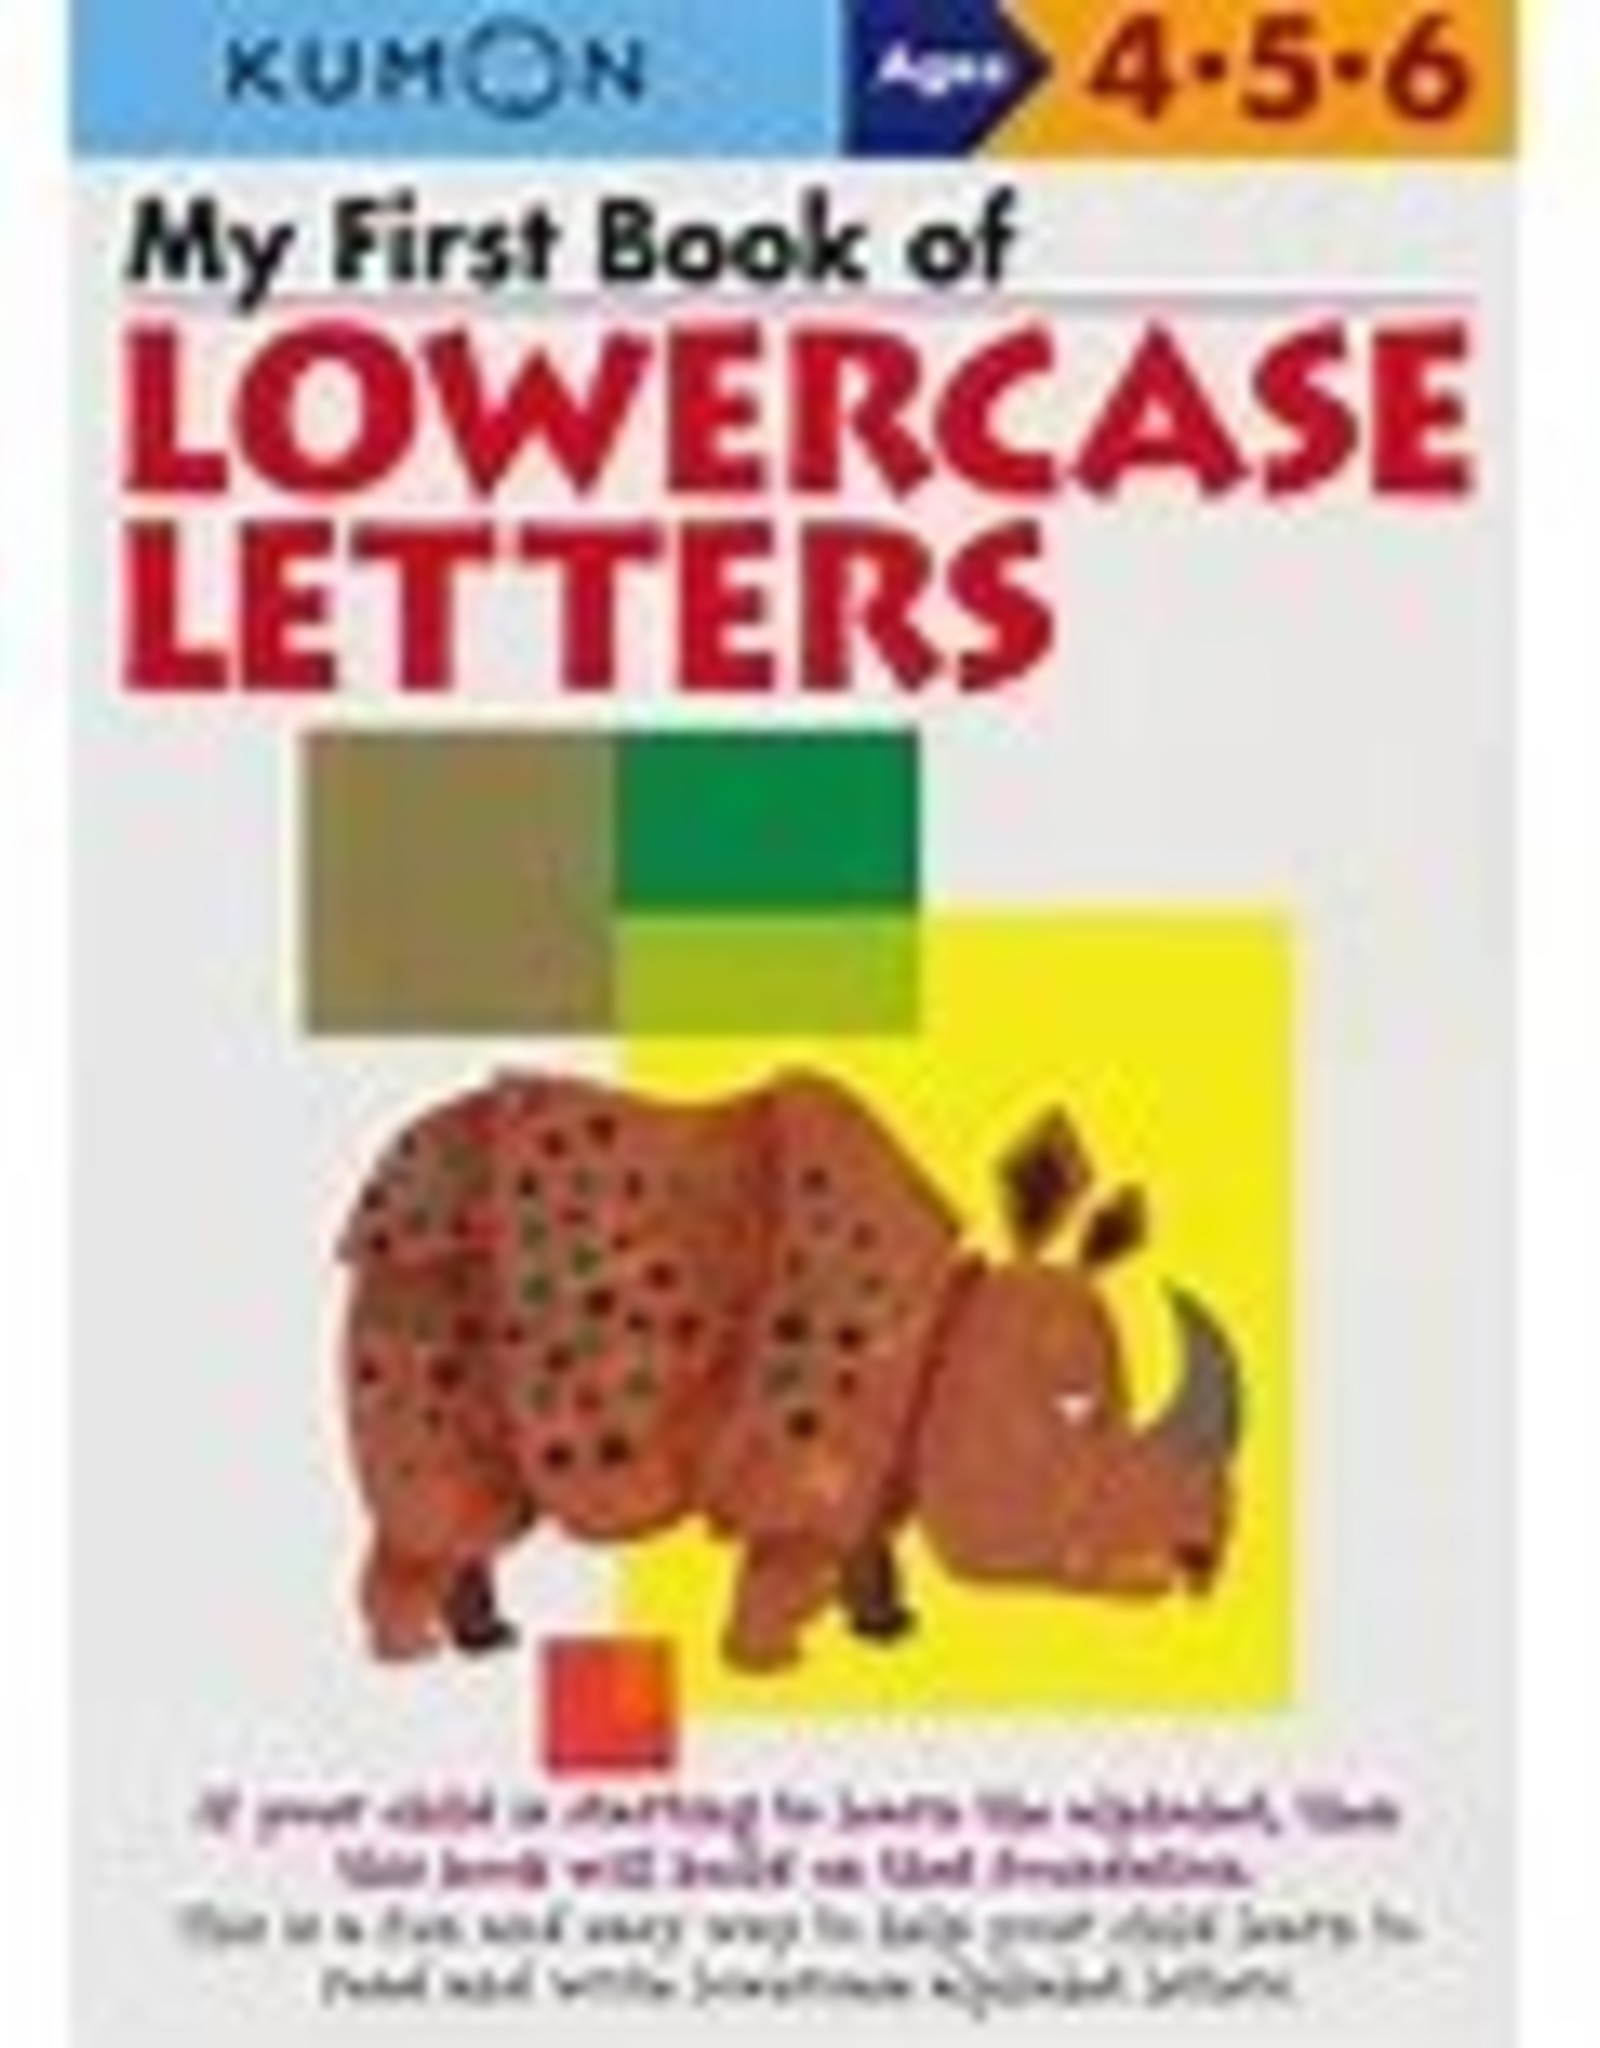 Kumon My First Book of Lowercase Letters